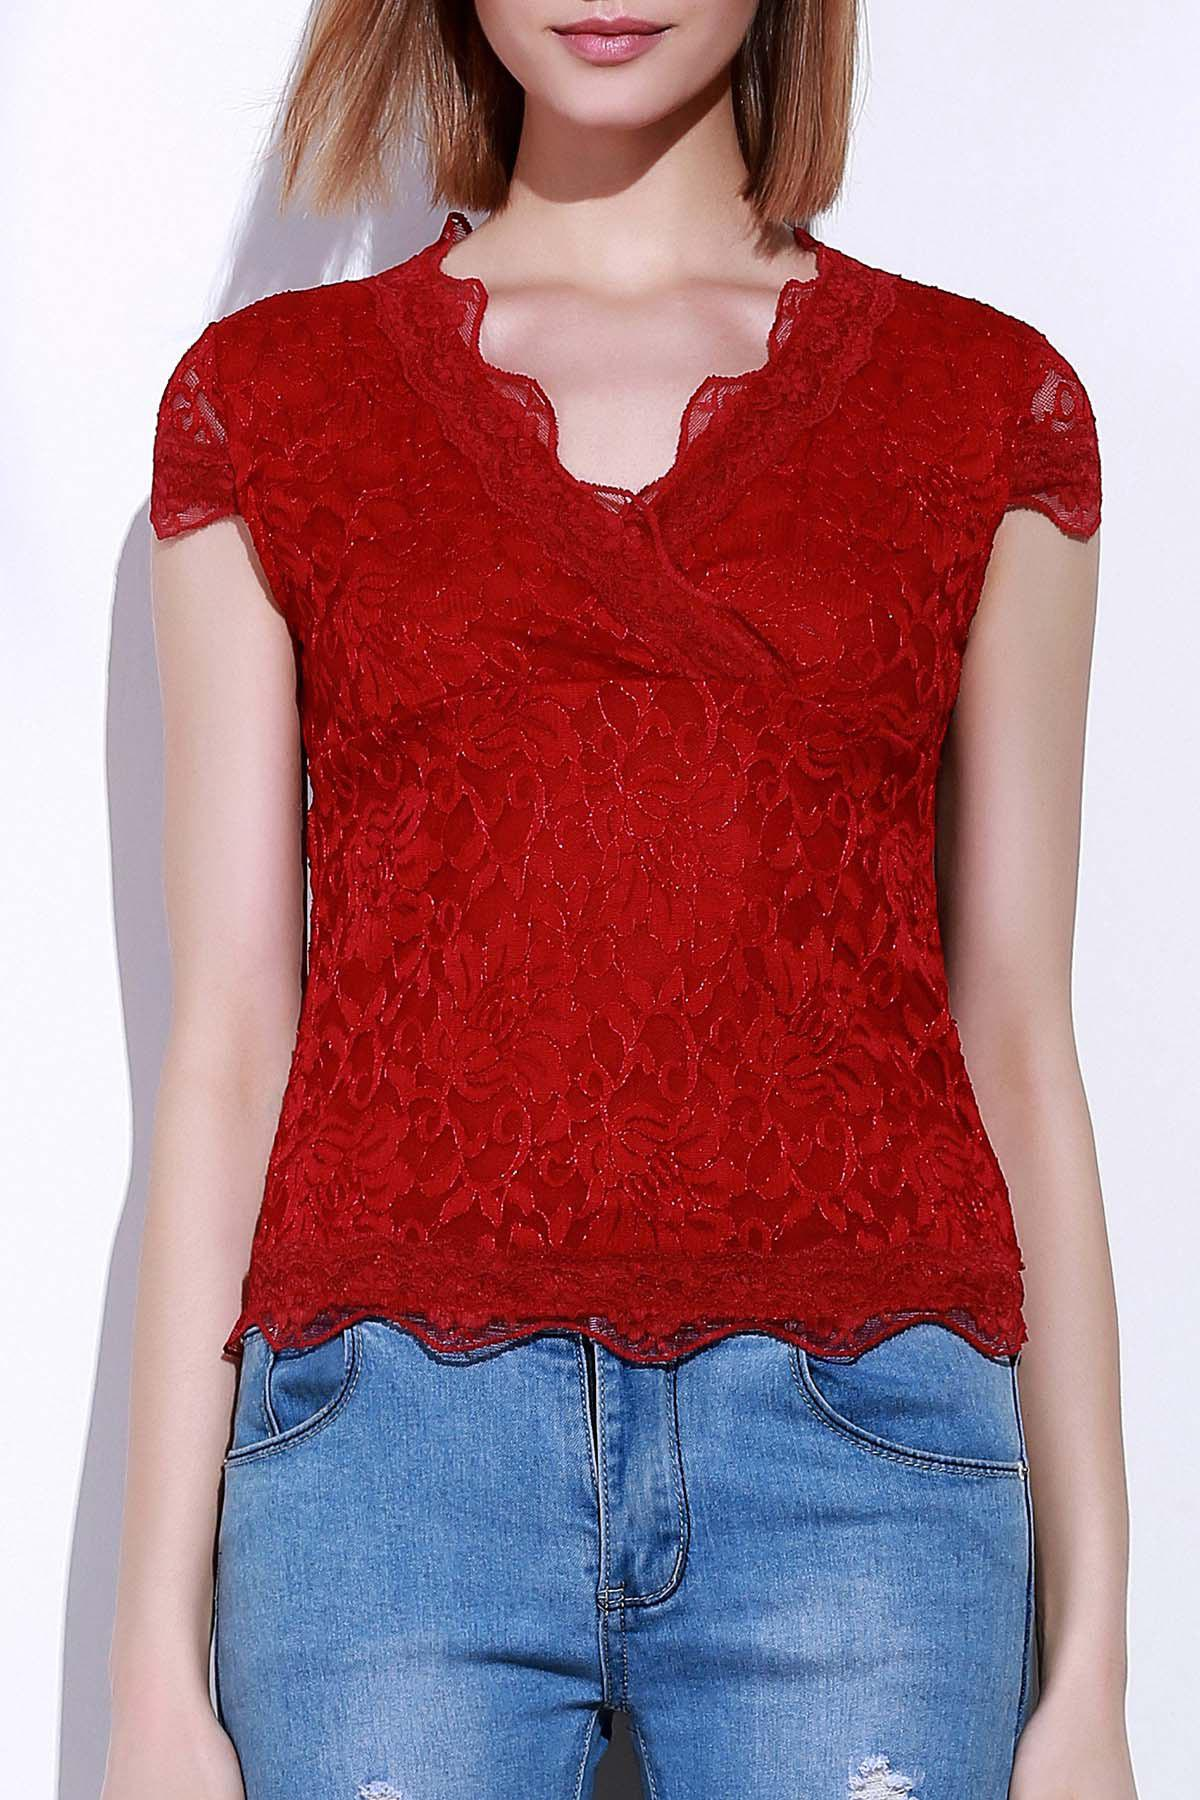 Stylish Short Sleeve Plunging Neck Lace Women's T-Shirt - RED S